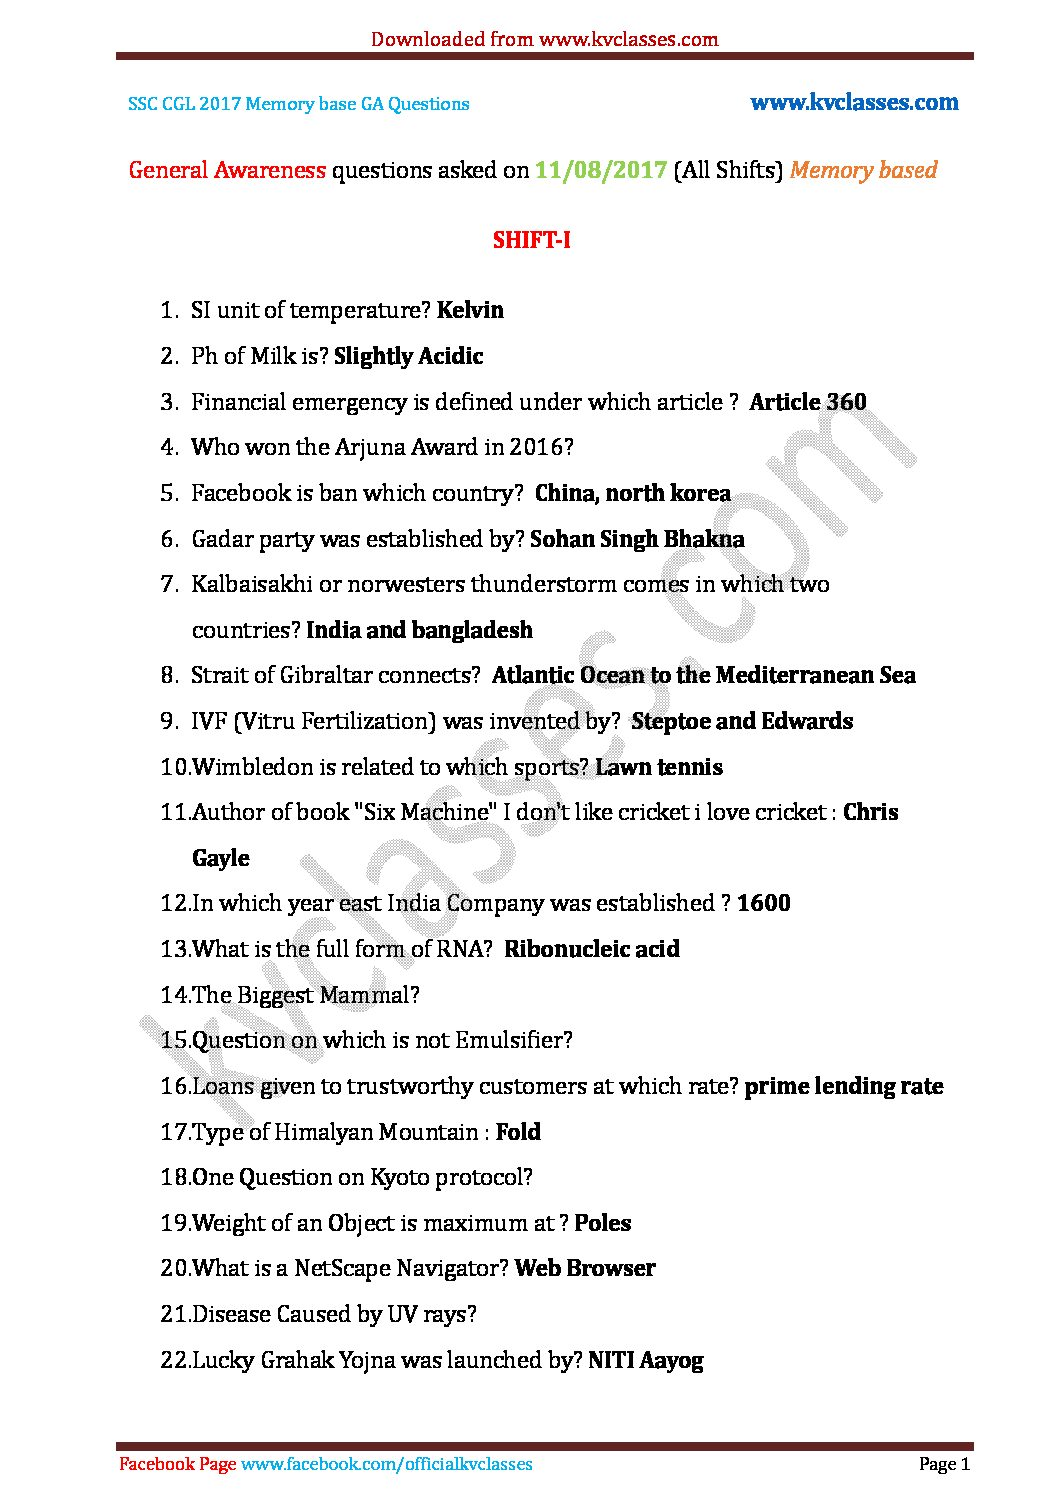 General Awareness questions asked on 11/08/2017 (All Shifts) Memory based pdf download